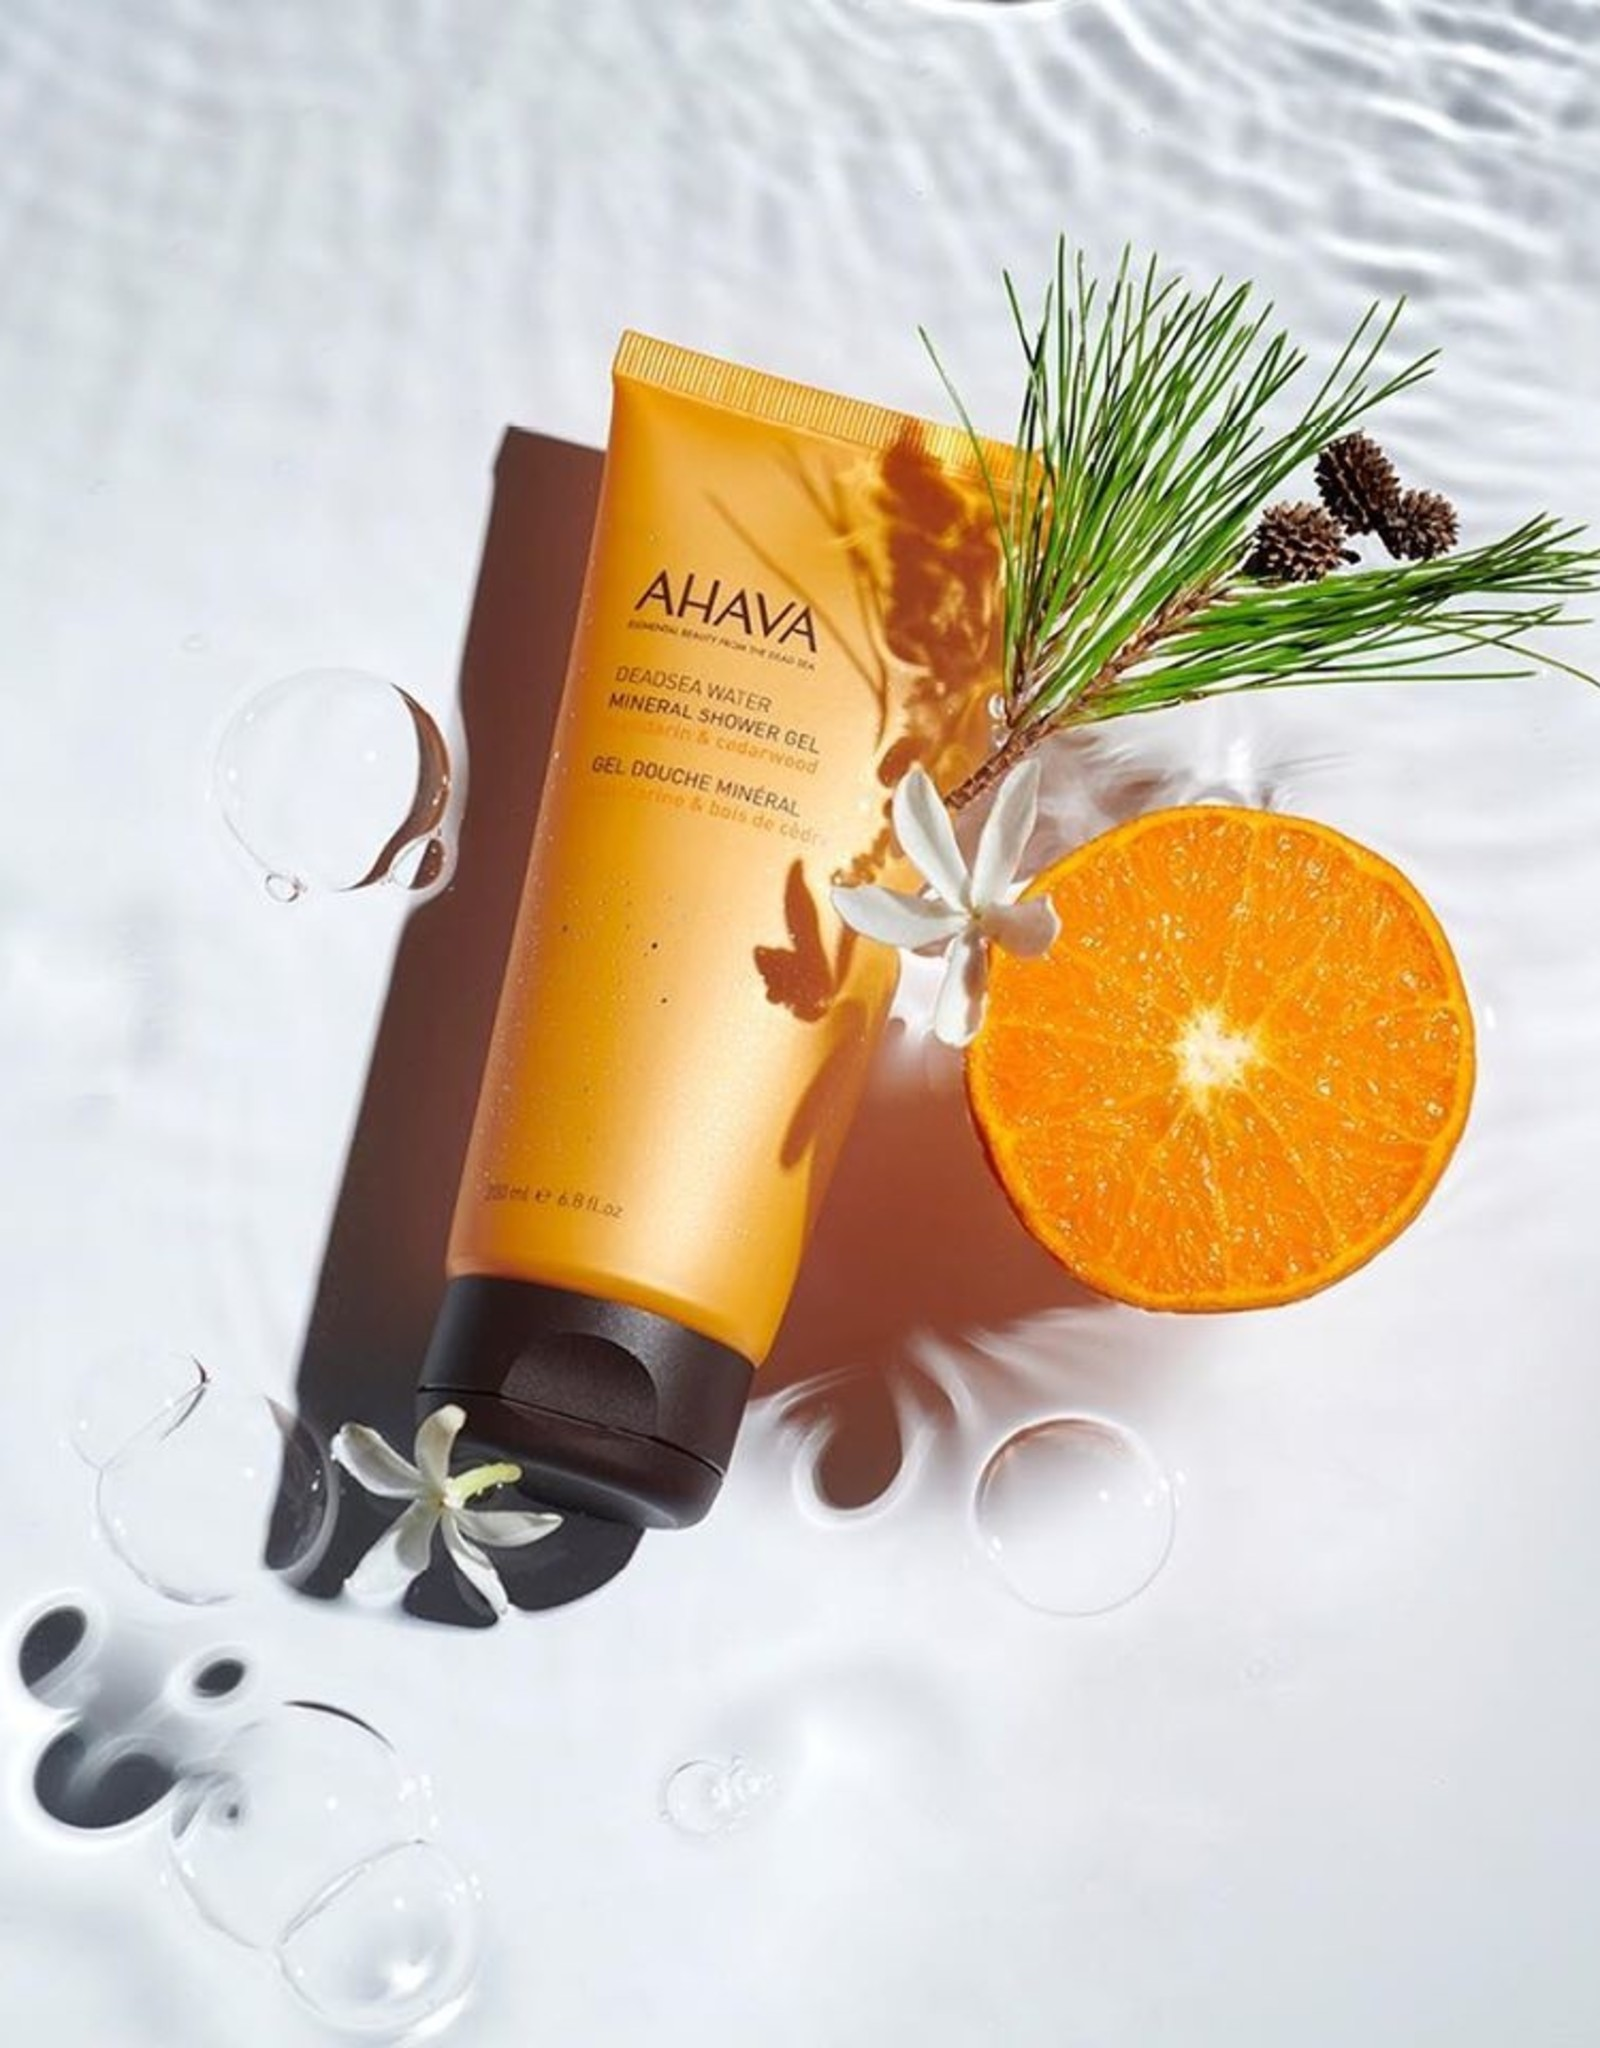 AHAVA Mineral shower gel mandarin & cedarwood 200ml